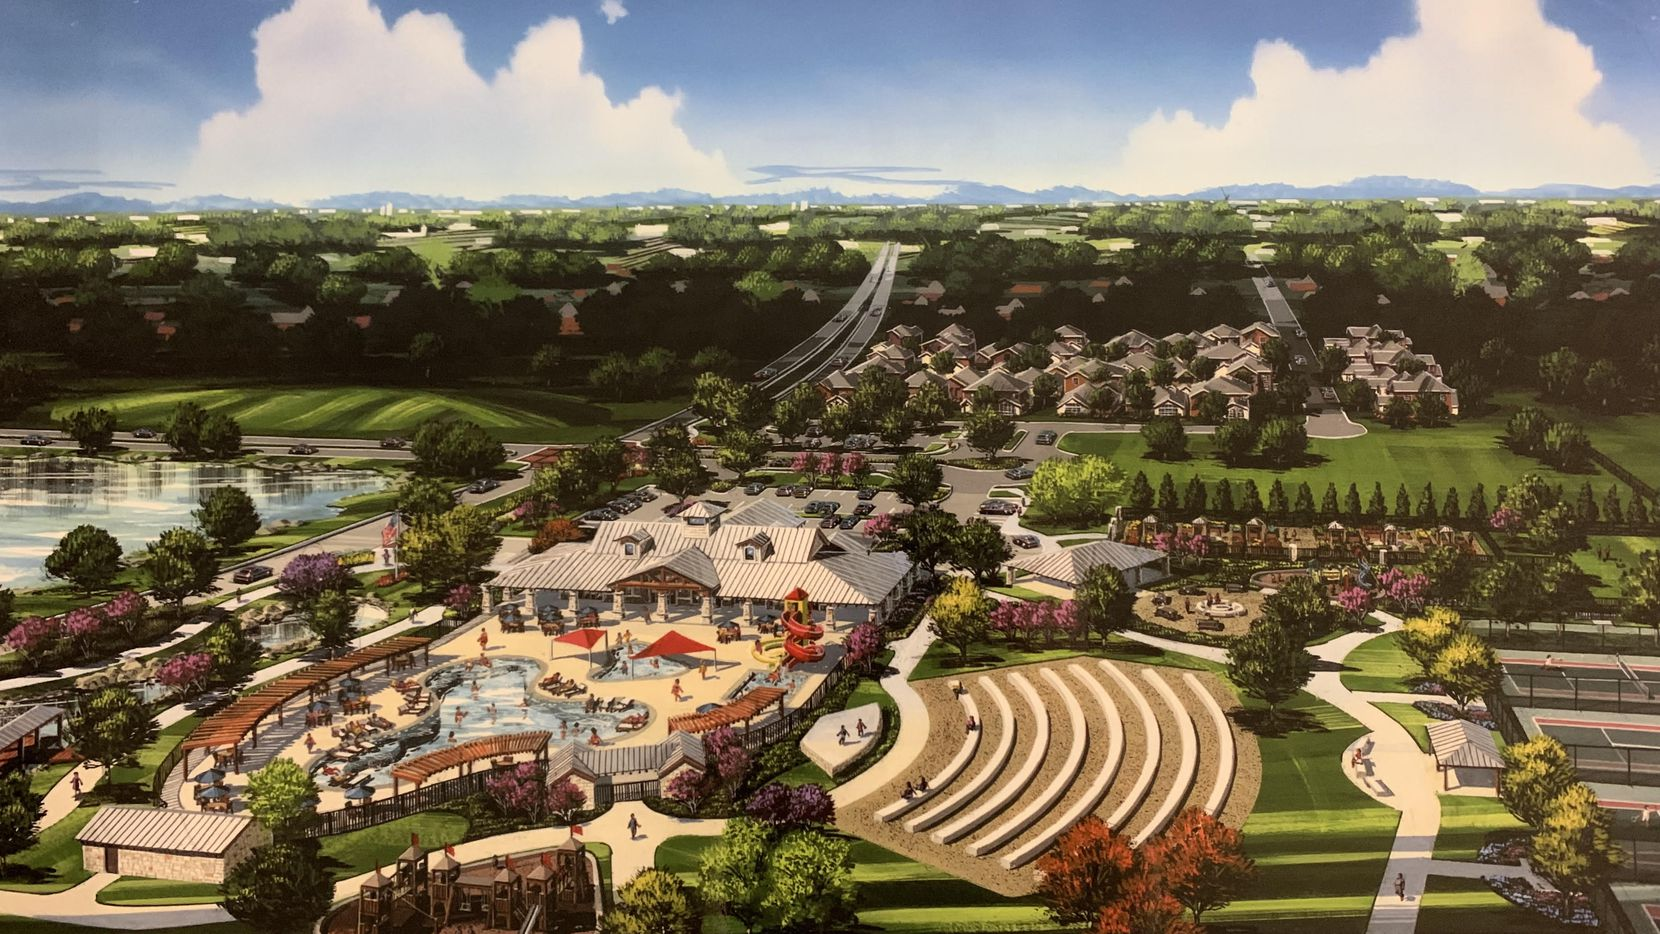 The amenity center in the 1,400-acre Green Meadows community is under construction.